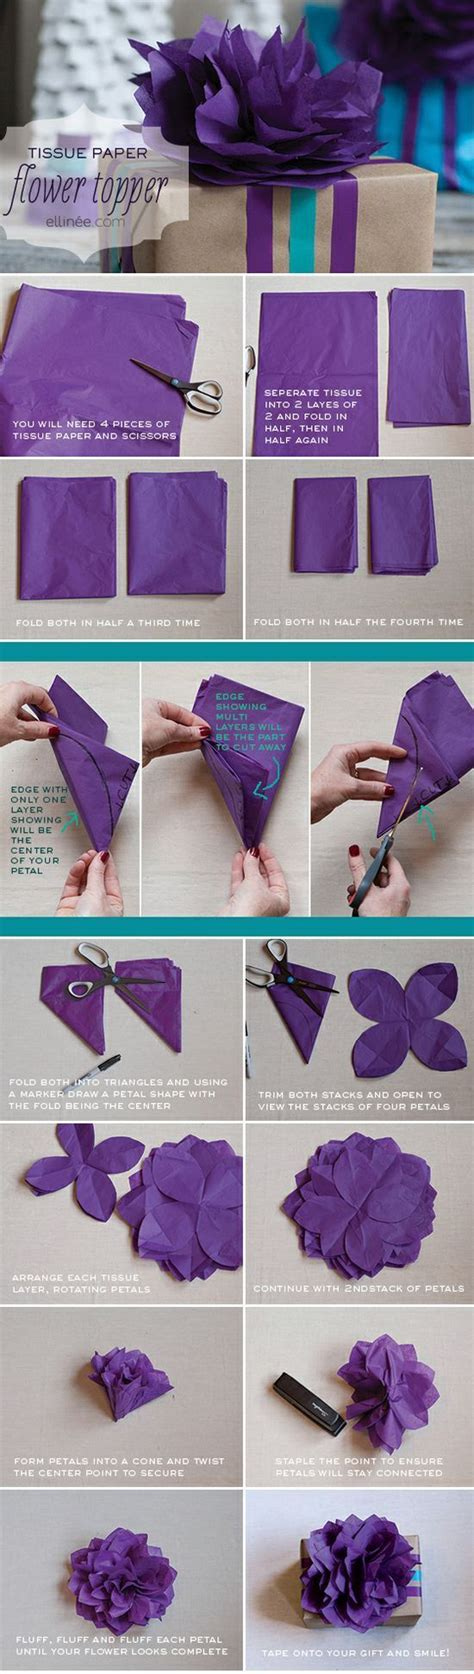 cool tissue paper crafts 136 best images about tissue paper craft ideas on